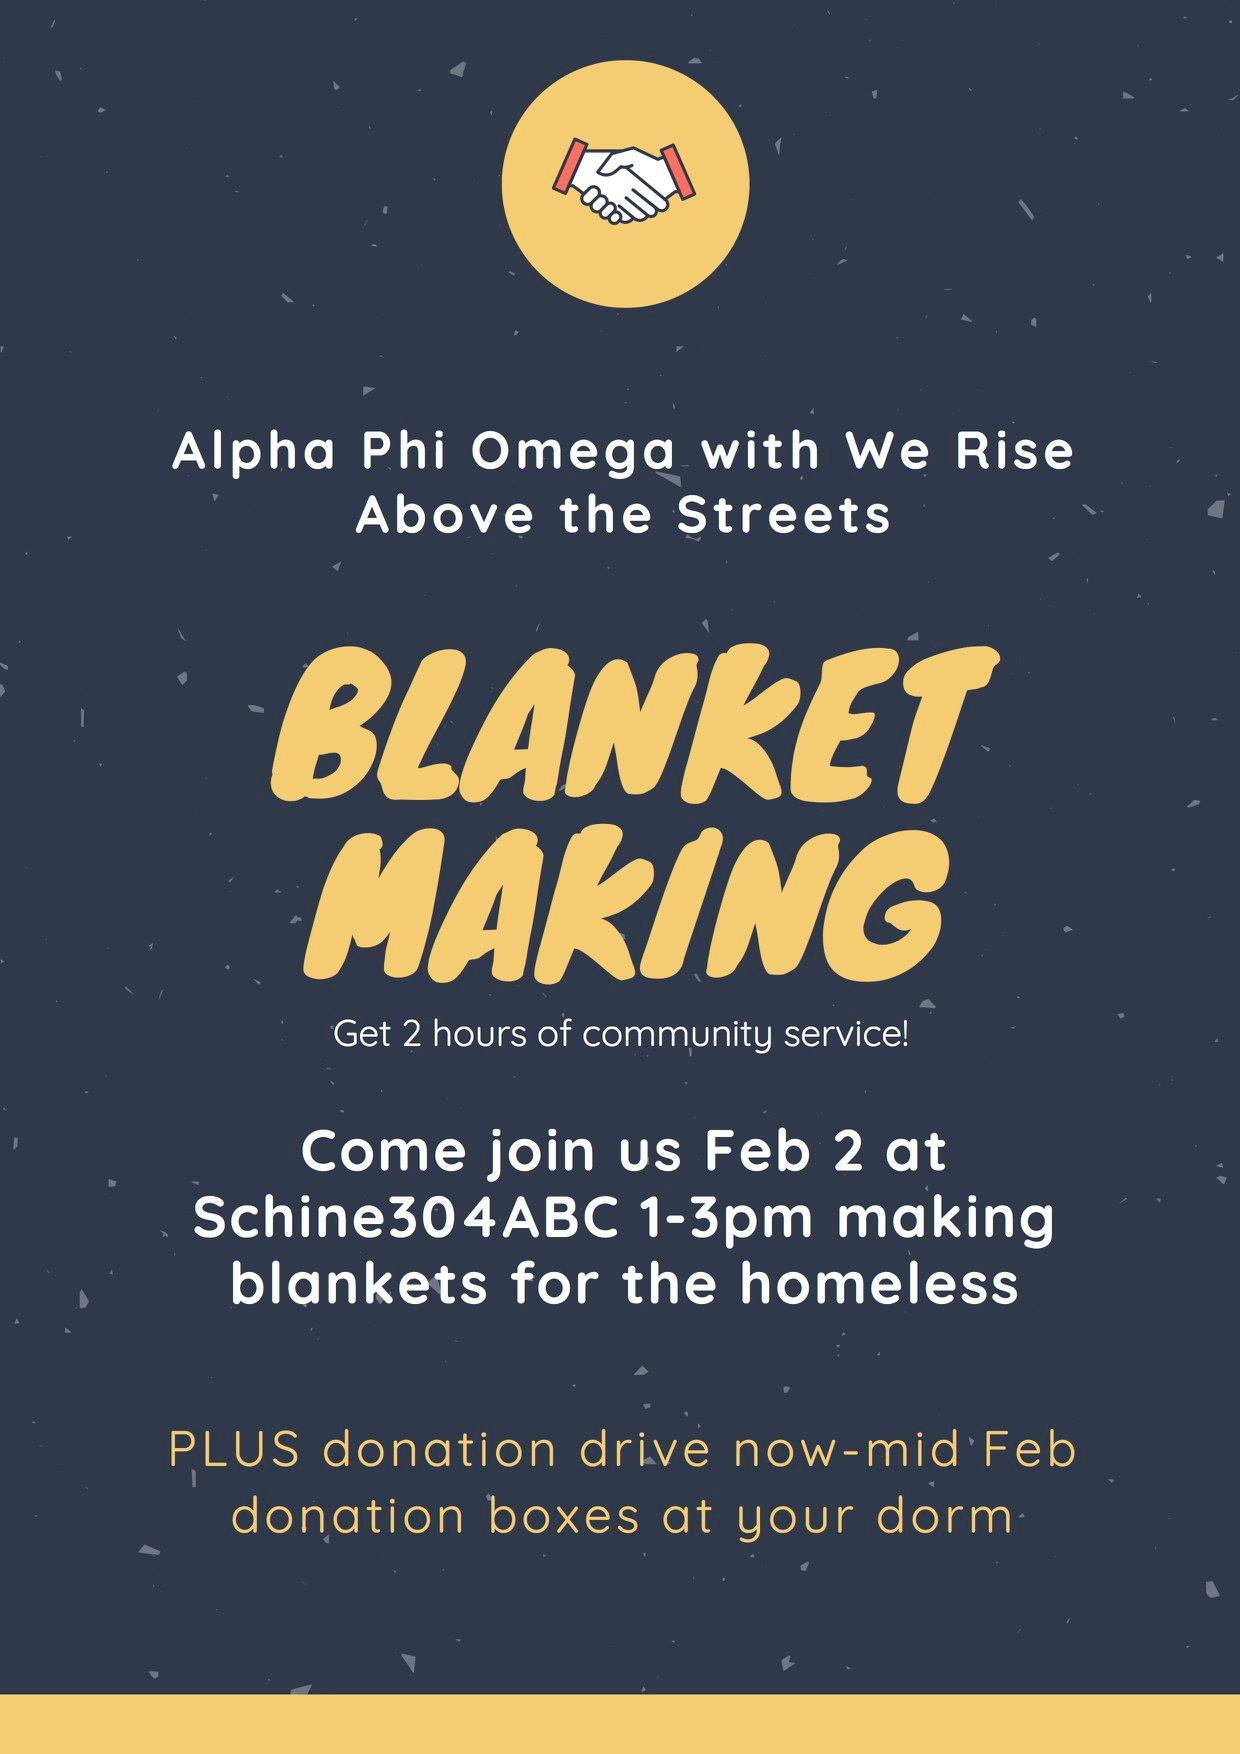 Blanket making event poster, all text from poster appears in post